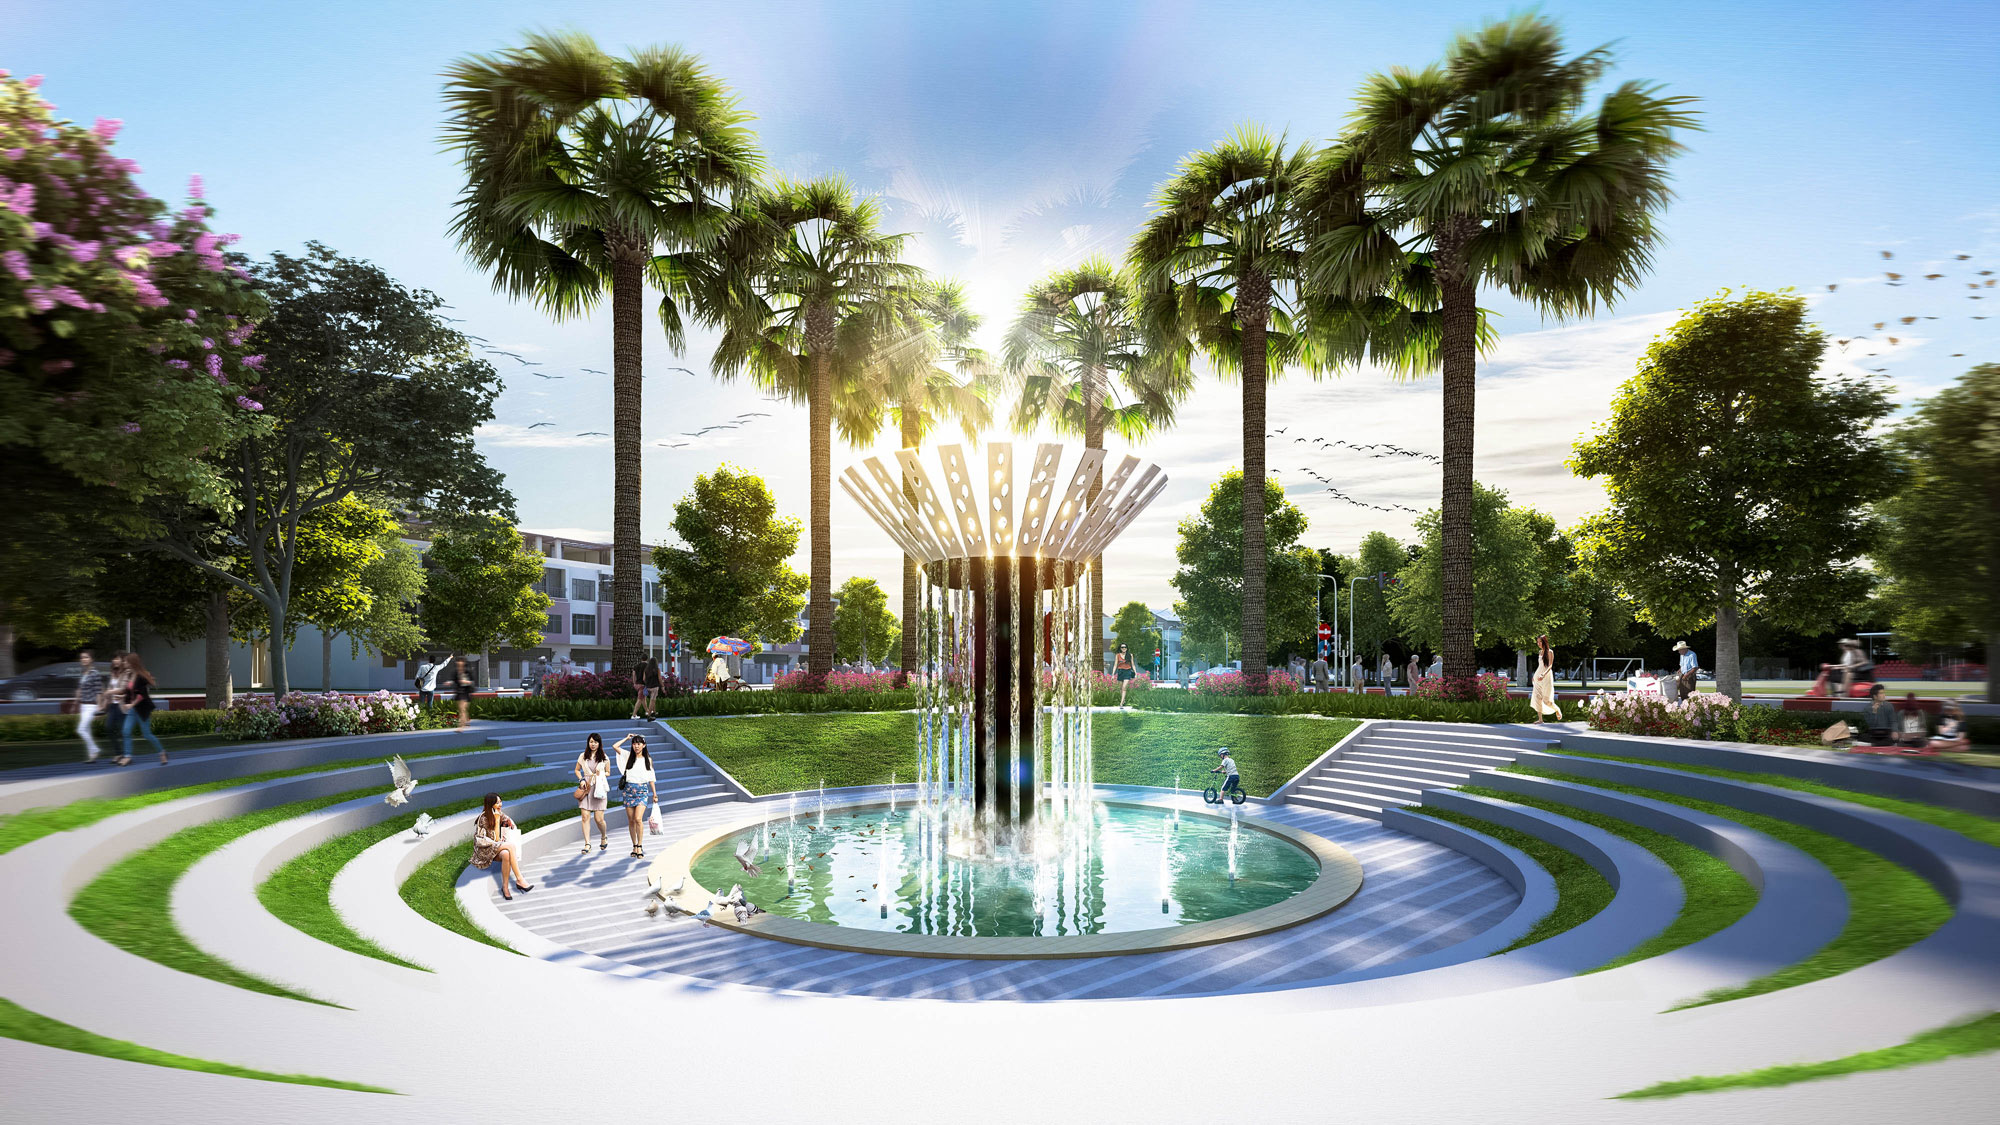 Tara Residence Park project contributed to the architectural space of Tara Residence